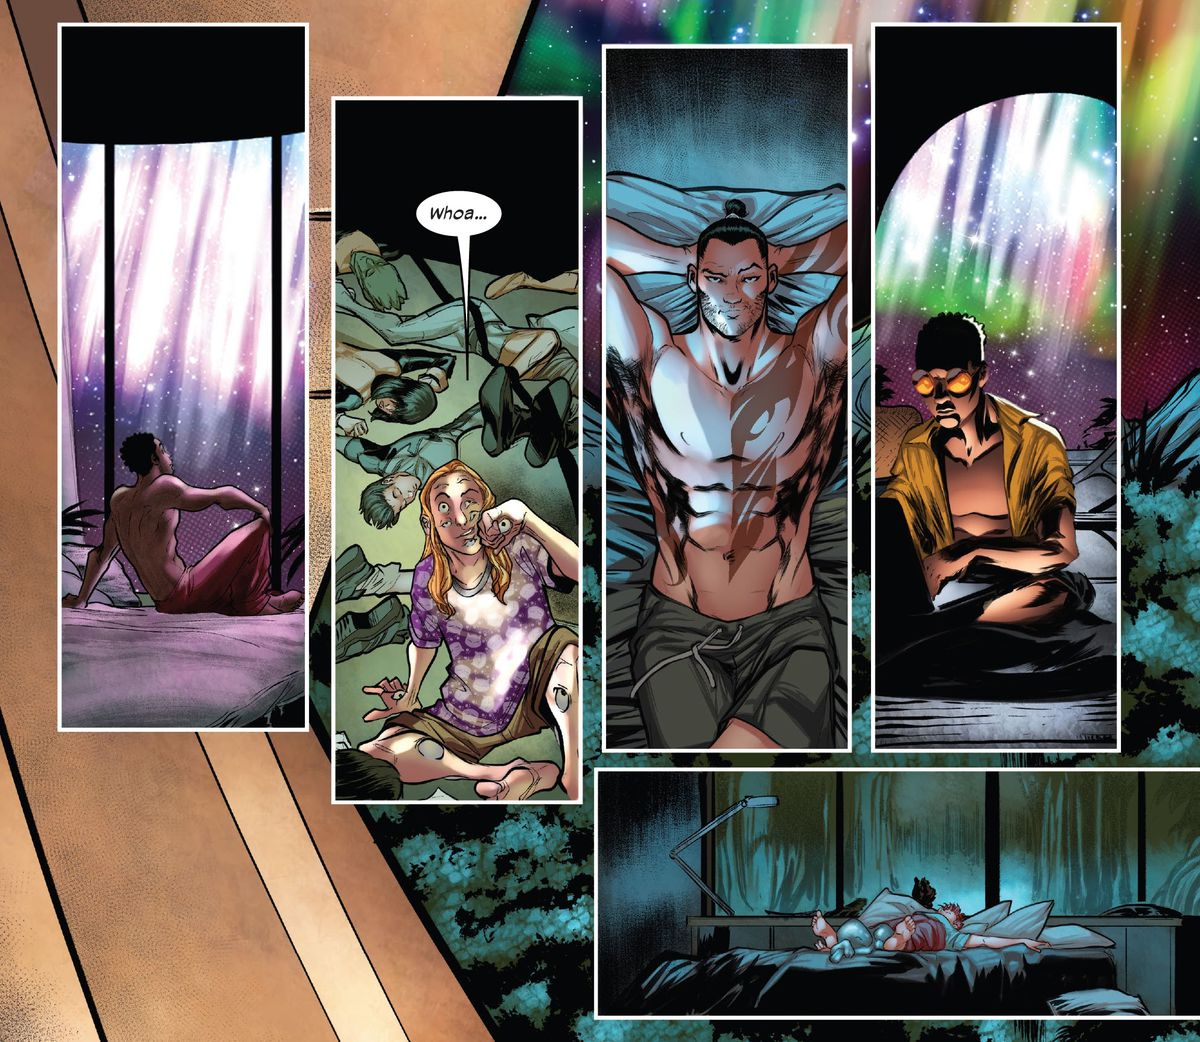 Members of X-Factor, including Eye-Boy, Daken, and Prodigy, notice Northstar and Aurora's lightshow from their various locations in Krakoa's Boneyard tower in X-Factor #5, Marvel Comics (2020).